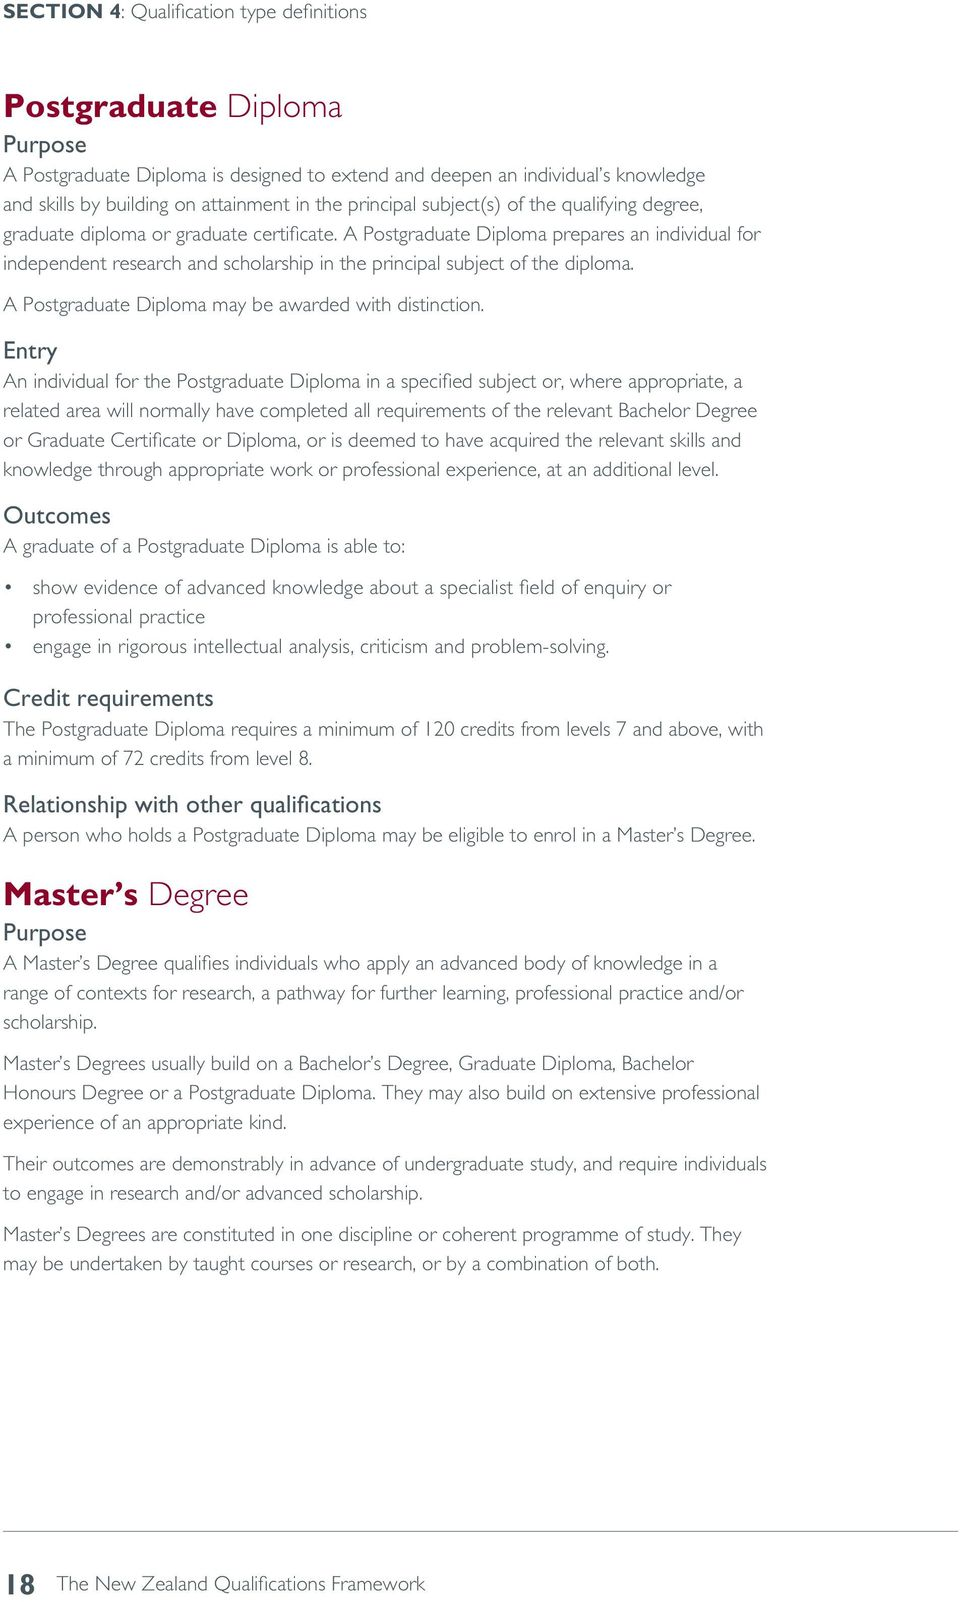 A Postgraduate Diploma prepares an individual for independent research and scholarship in the principal subject of the diploma. A Postgraduate Diploma may be awarded with distinction.